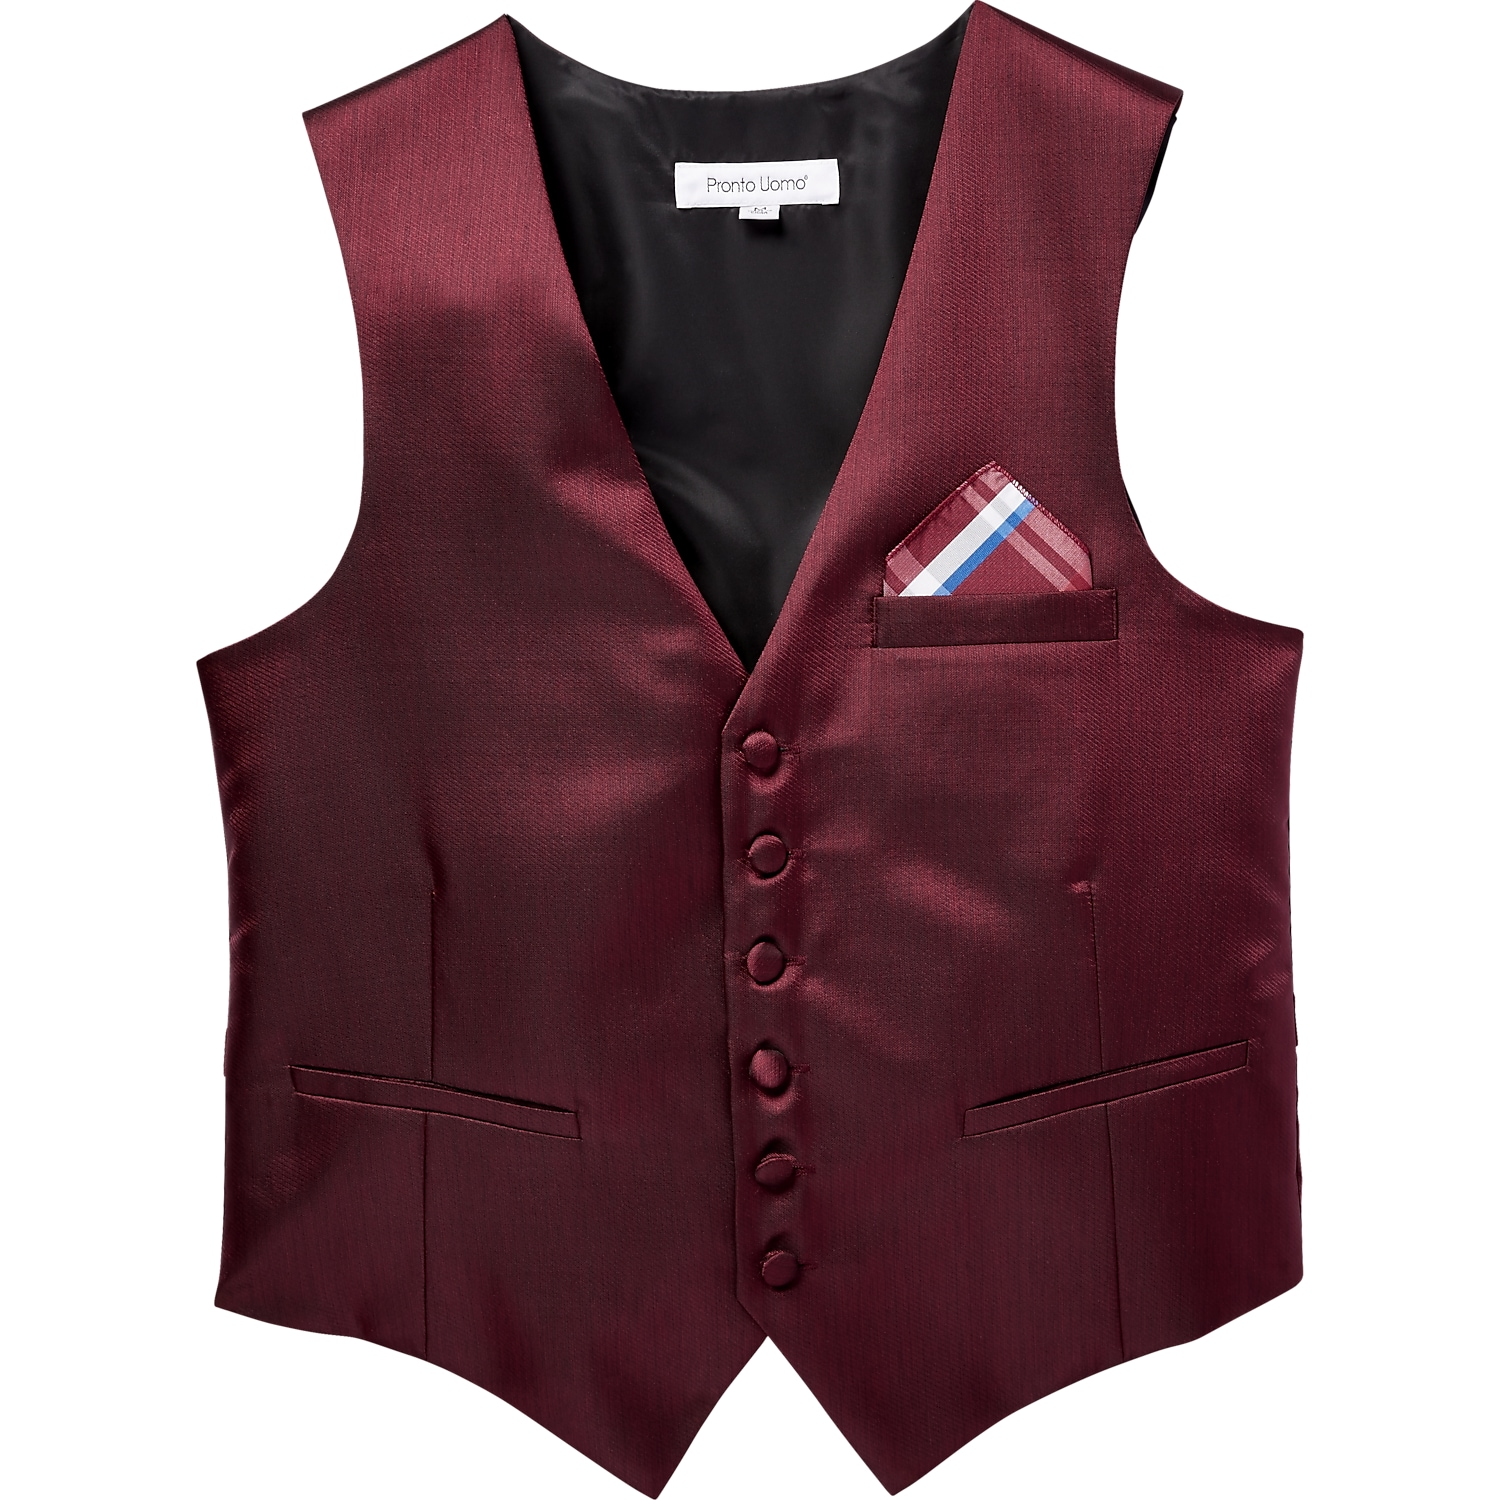 Adult sized Satin Vest fully lined adult size your color choice, custom made to order